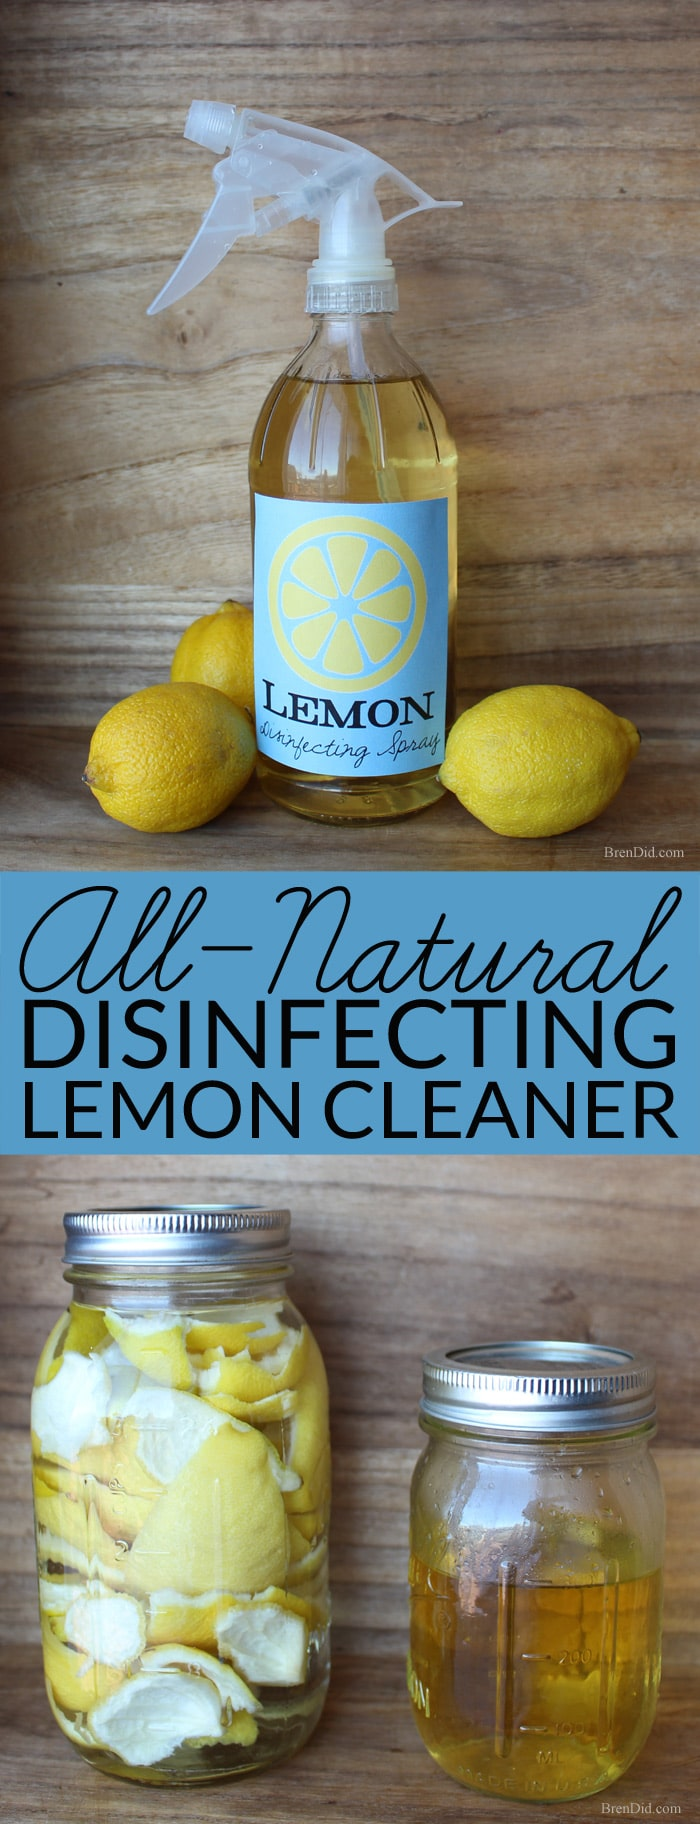 Make this two ingredient all-natural disinfecting spray to help protect your family from germs during cold and flu season.